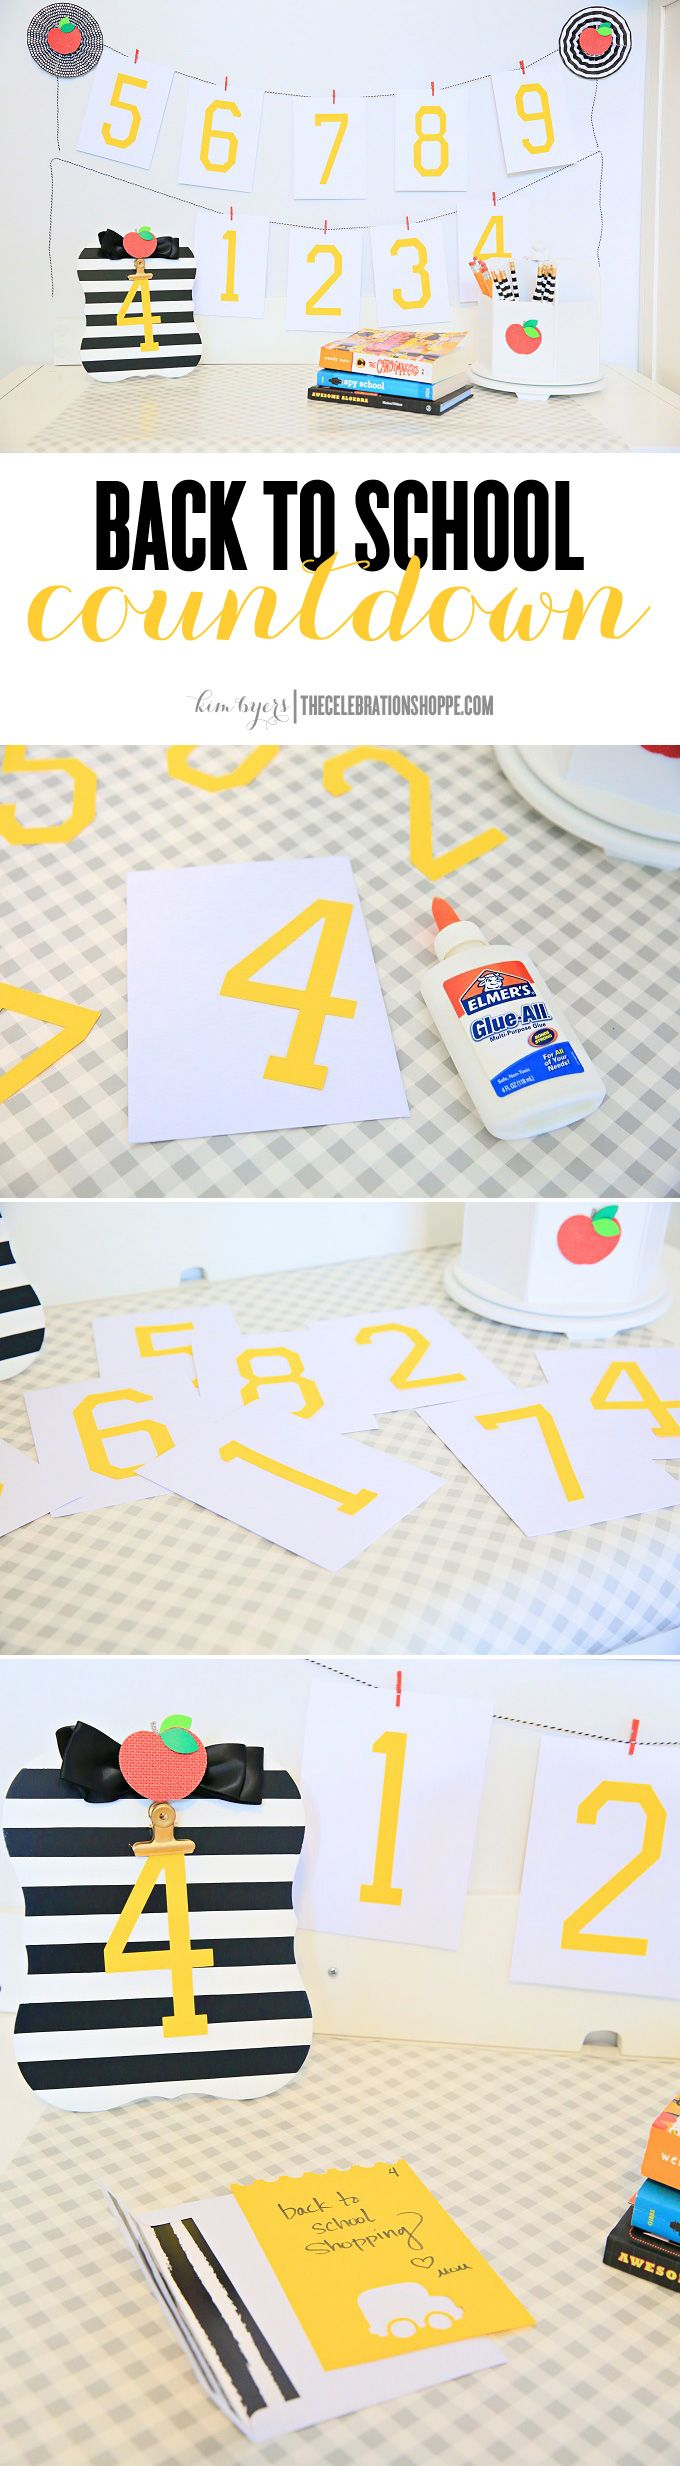 Easy and Creative Back To School Countdown with Elmer's - make the last days of summer fun!  | Kim Byers TheCelebrationShoppe.com